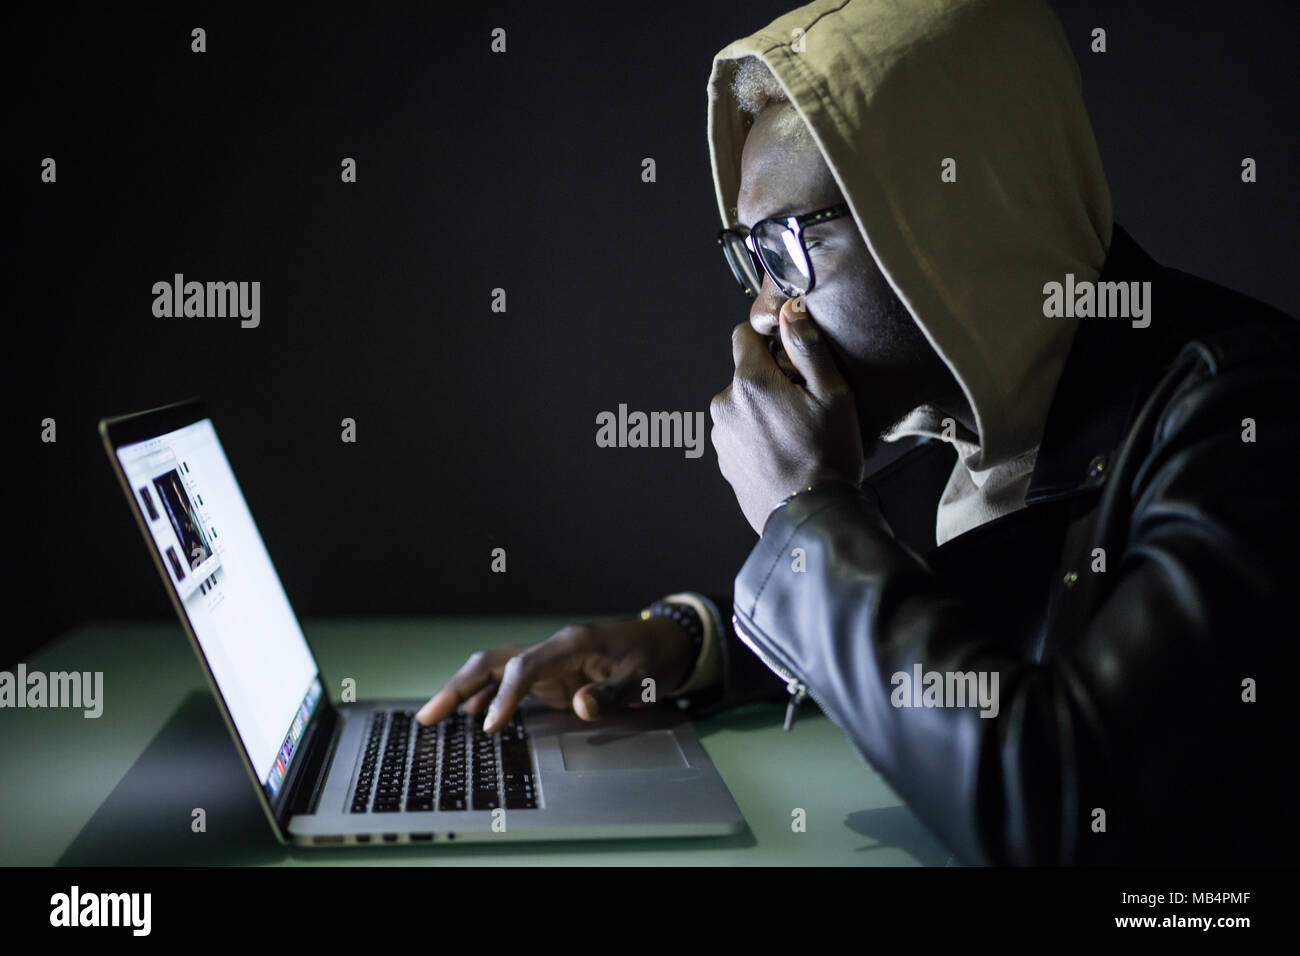 Afro American Man Sits At Night At A Computer Desk Using The Internet Gamer Sits At Night At A Table Near A Computer With Cookies In His Hands And Lo Stock Photo